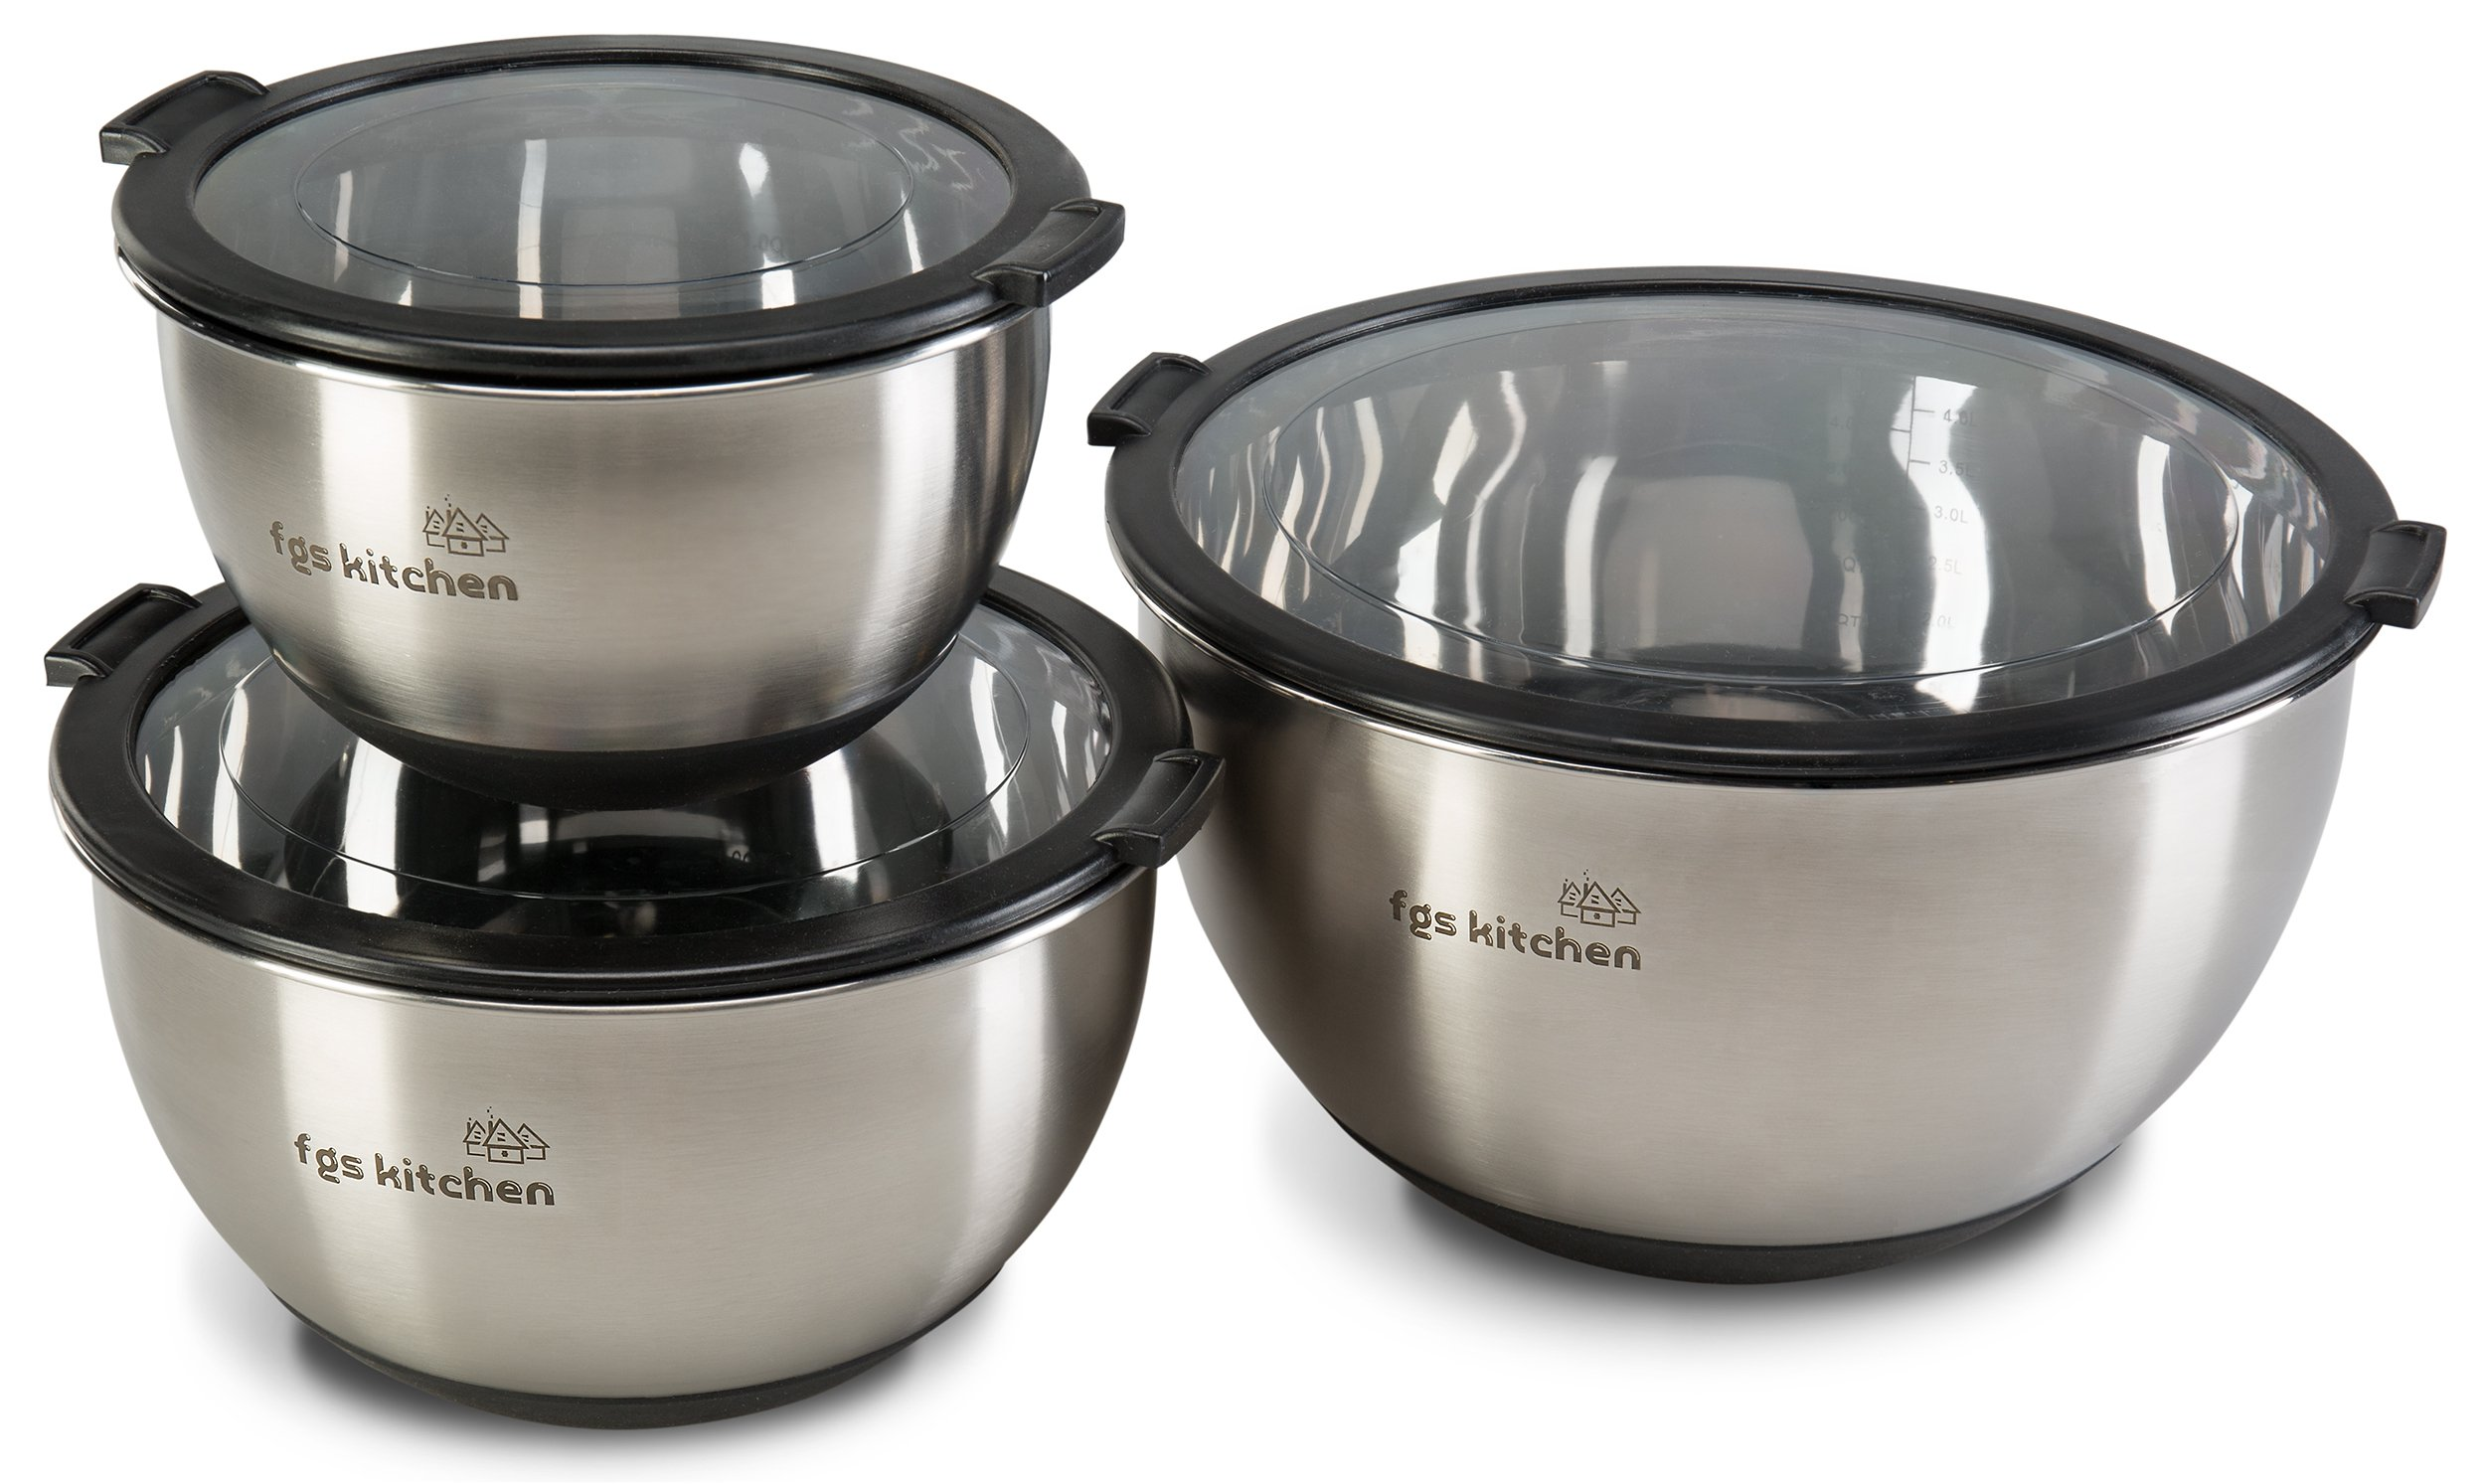 FGS Kitchen Mixing Bowl Set - Stainless Steel Mixing Bowls with Transparent Lids - Set of 3 Premium Non-Slip Nesting Bowls for Cooking, Baking, Serving and Storage by FGS Kitchen